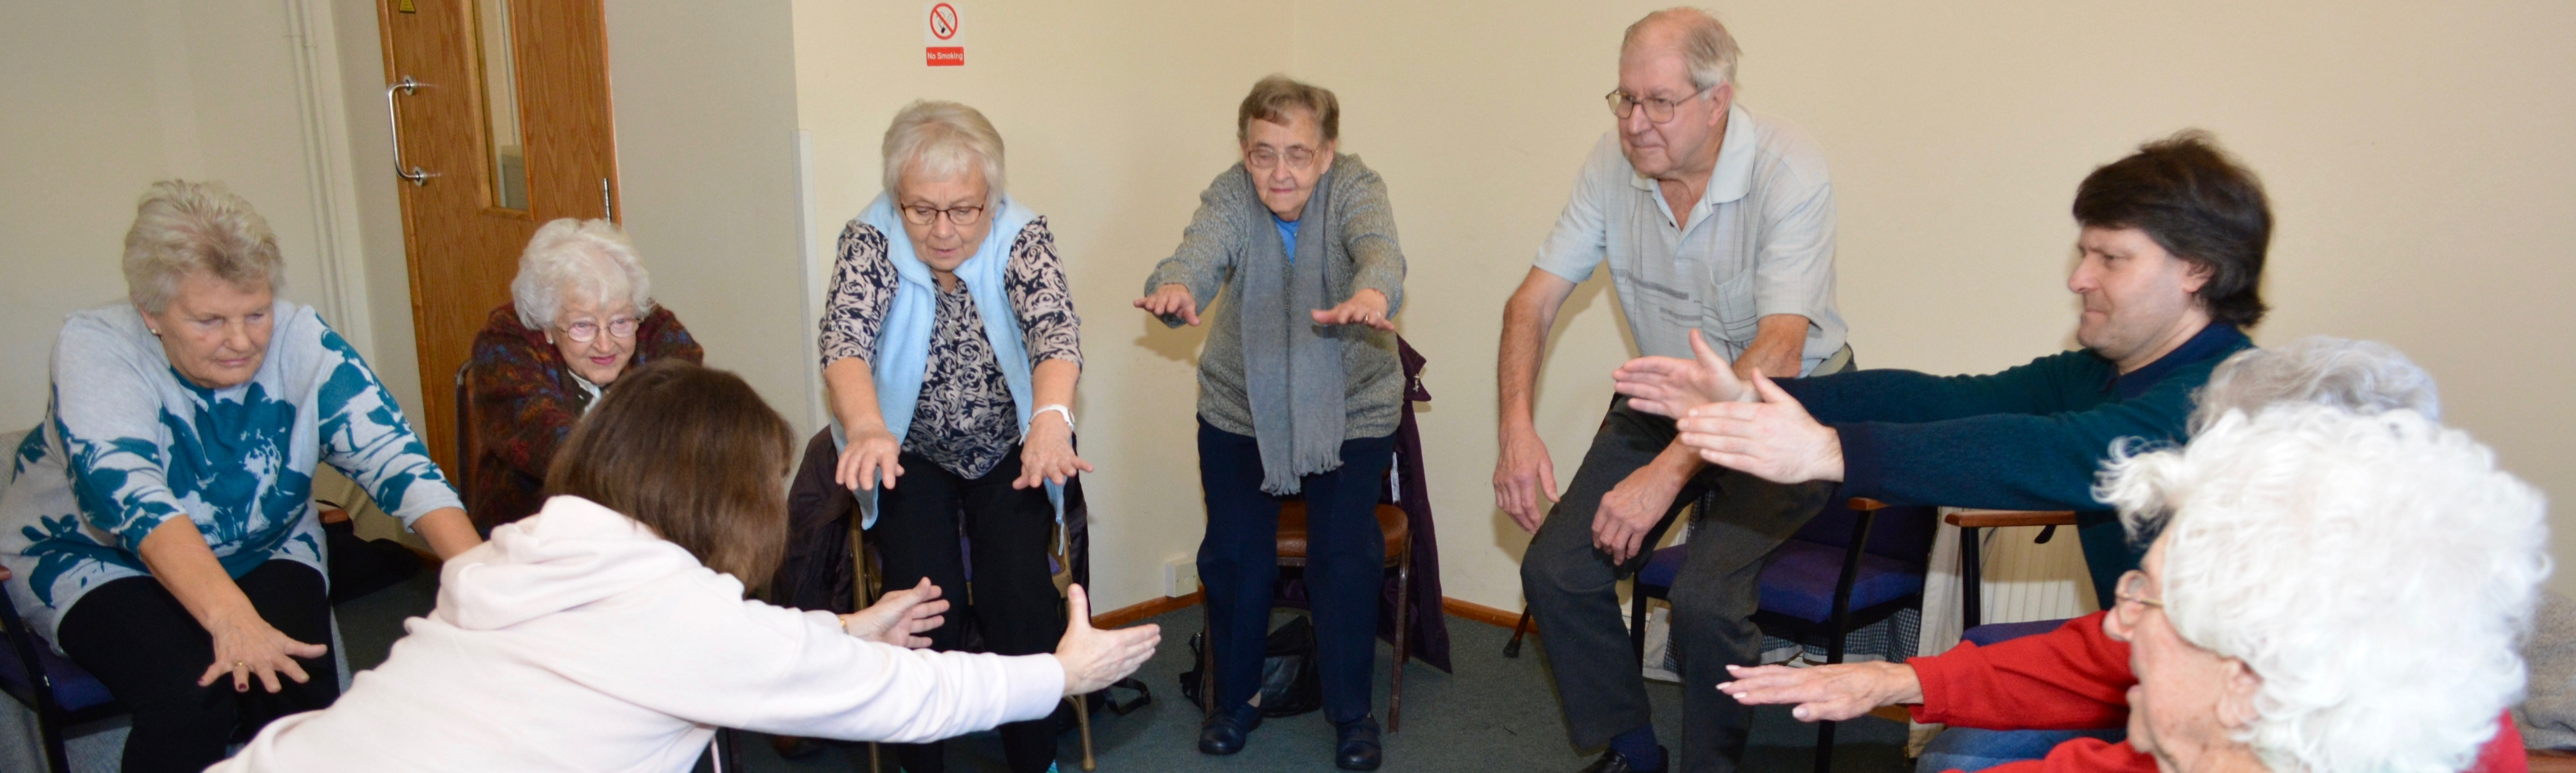 Dementia Friends Yoga